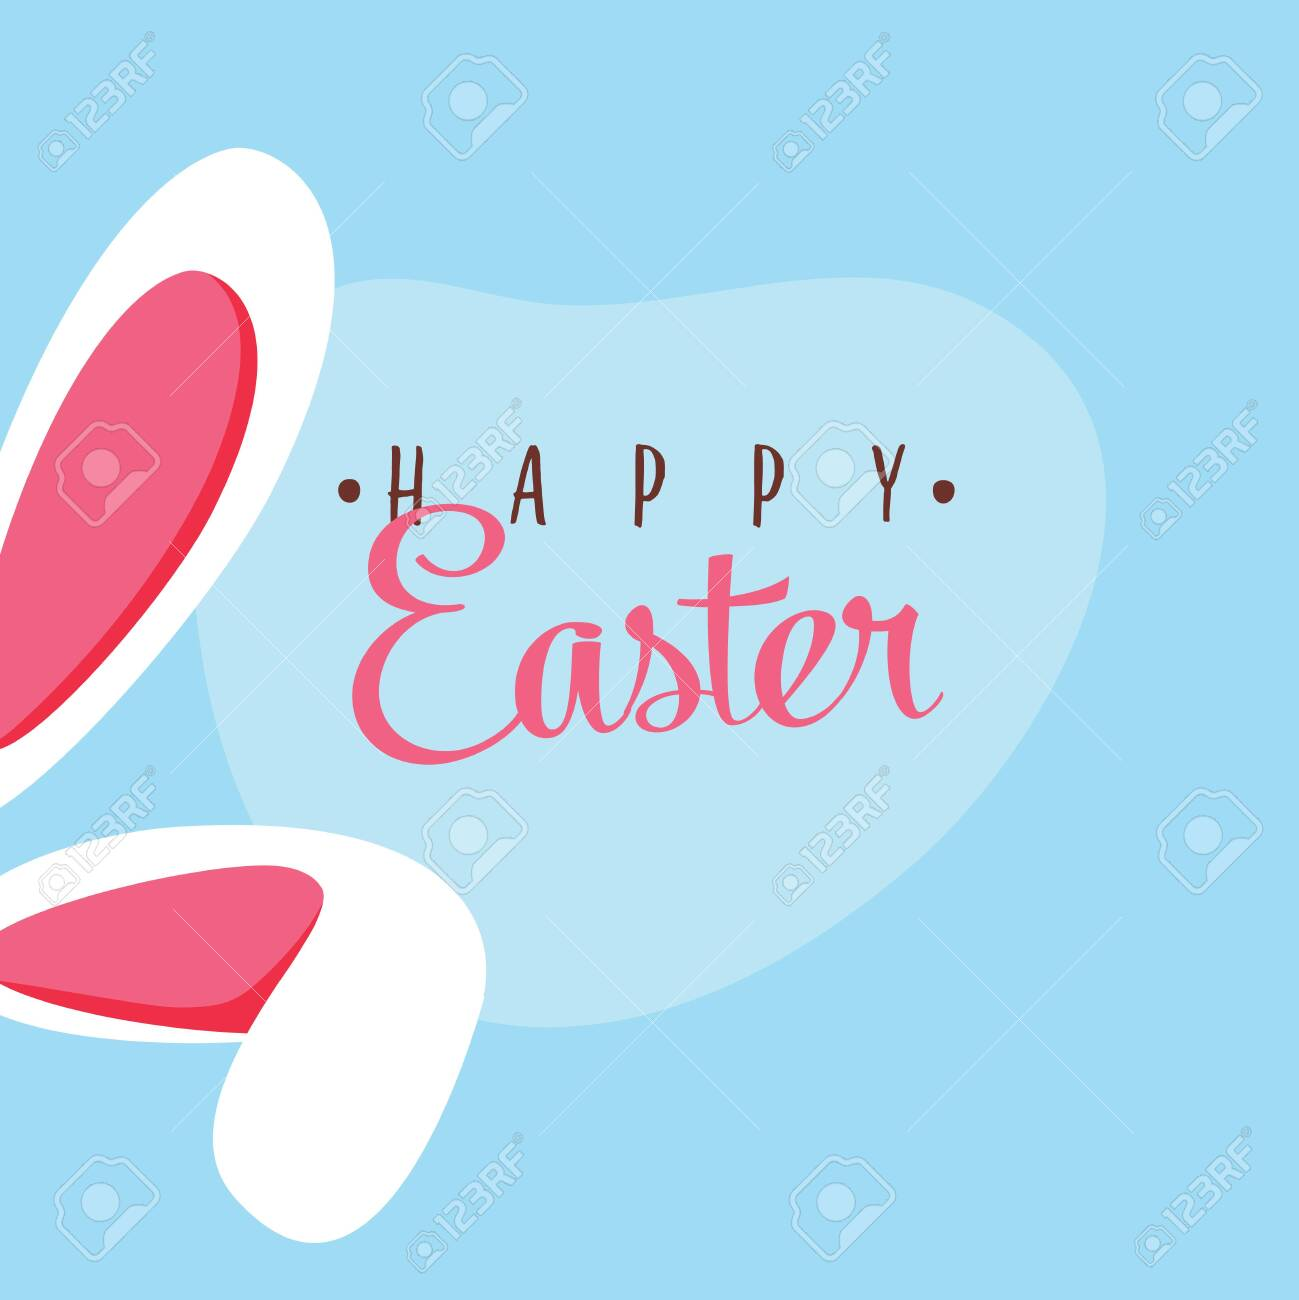 Cute easter bunny vector illustration, bunny ears. Greeting card with Happy Easter writing. Ears of rabbit Isolated on blue background. Holiday postcard, beautiful, colorful post for social networks. - 122045044